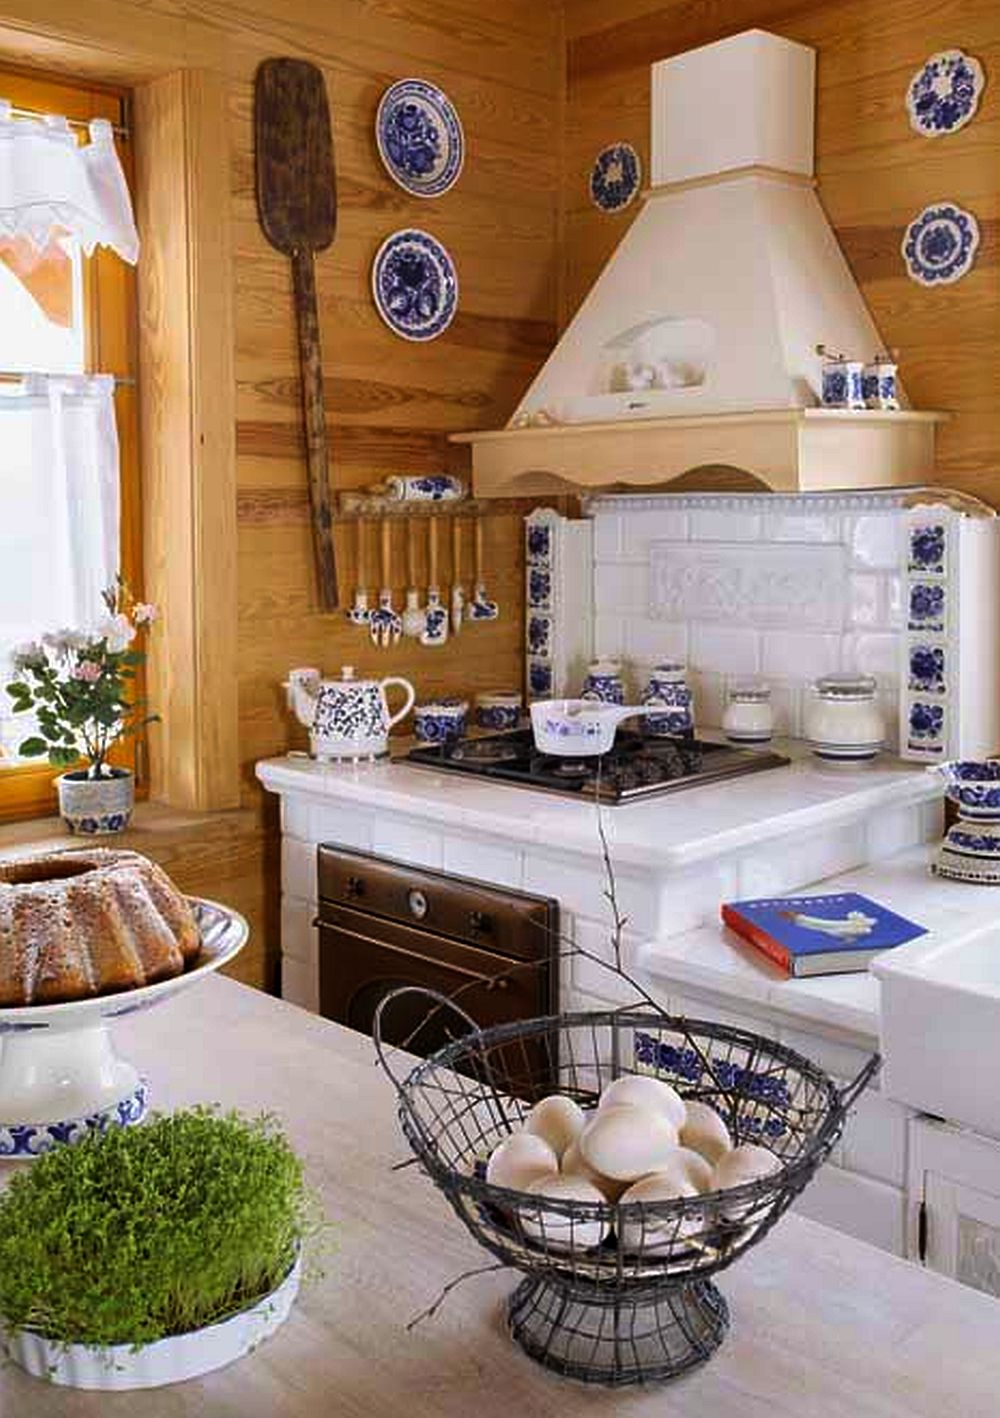 adelaparvu.com about rustic house in white and blue Photo Aneta Tryczynska(7)